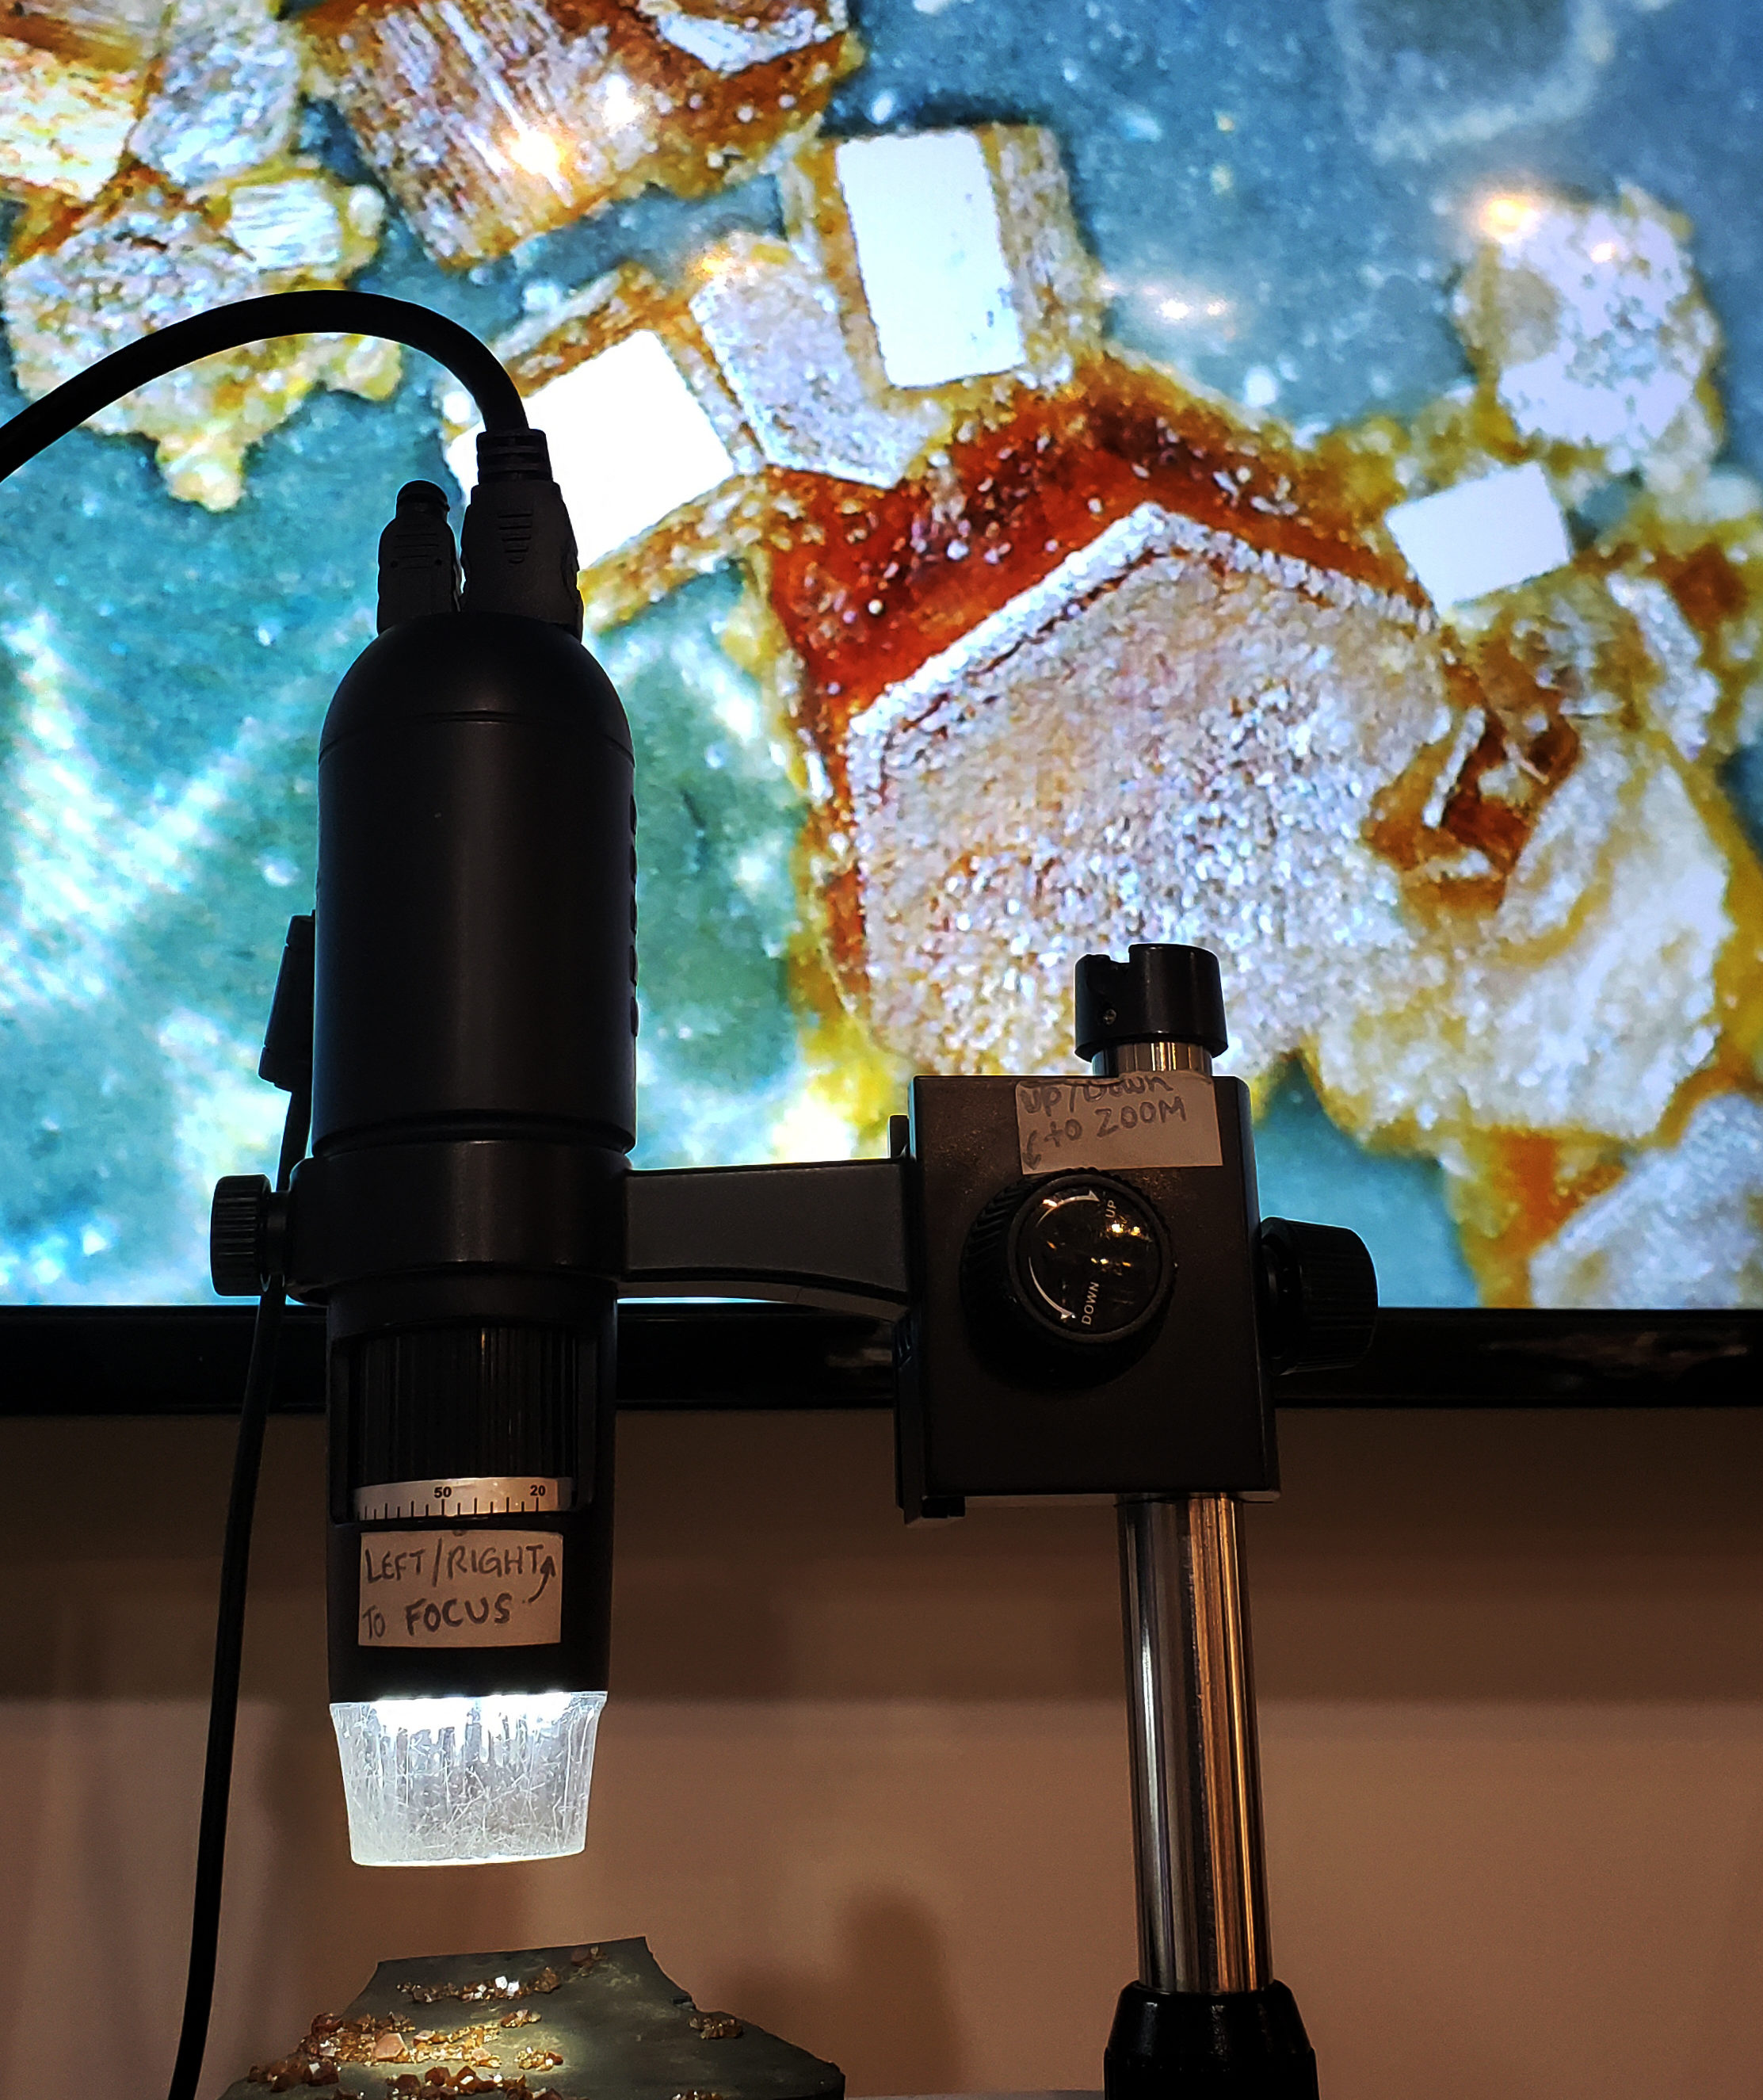 Microscope with television behind it